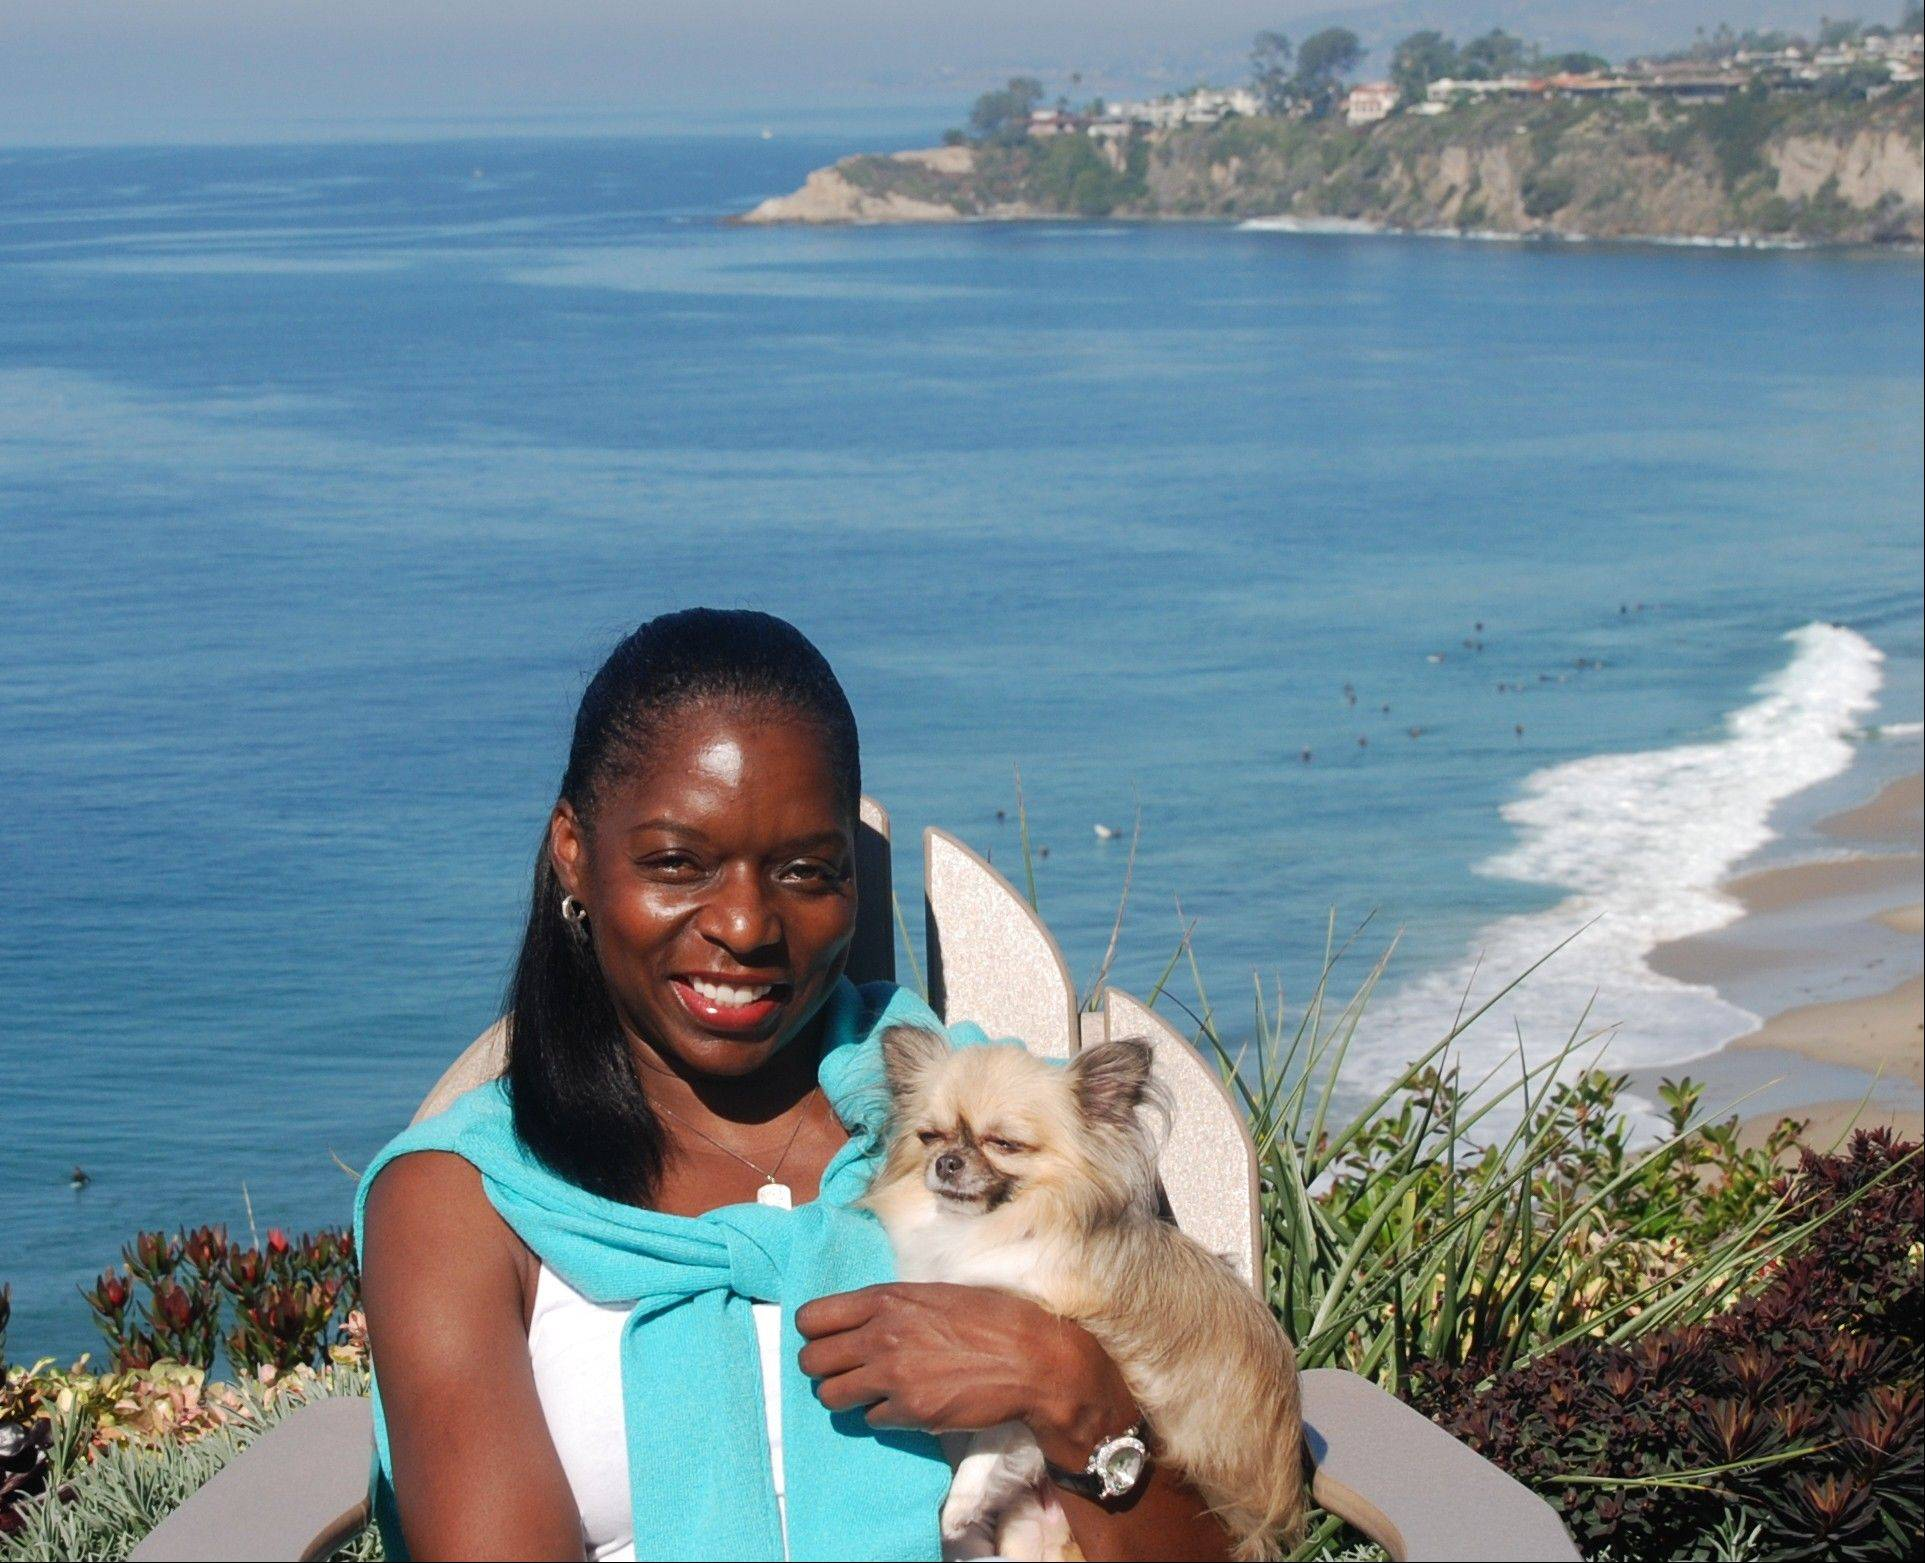 "This Oct. 28, 2011, photo provided by The Jet Set Pets shows Kelly E. Carter, founder of The Jet Set Pets, posing with her longhair Chihuahua, Lucy, at the Ritz-Carlton, Laguna Niguel in Dana Point, Calif. Travel for humans during holidays is tough enough: Long lines, crowds everywhere, extra bags full of presents. Throw a pet in the mix, and it's a recipe for disaster. ""Some dogs don't like to travel, some love it,"" she said. ""You have to know your pet."""